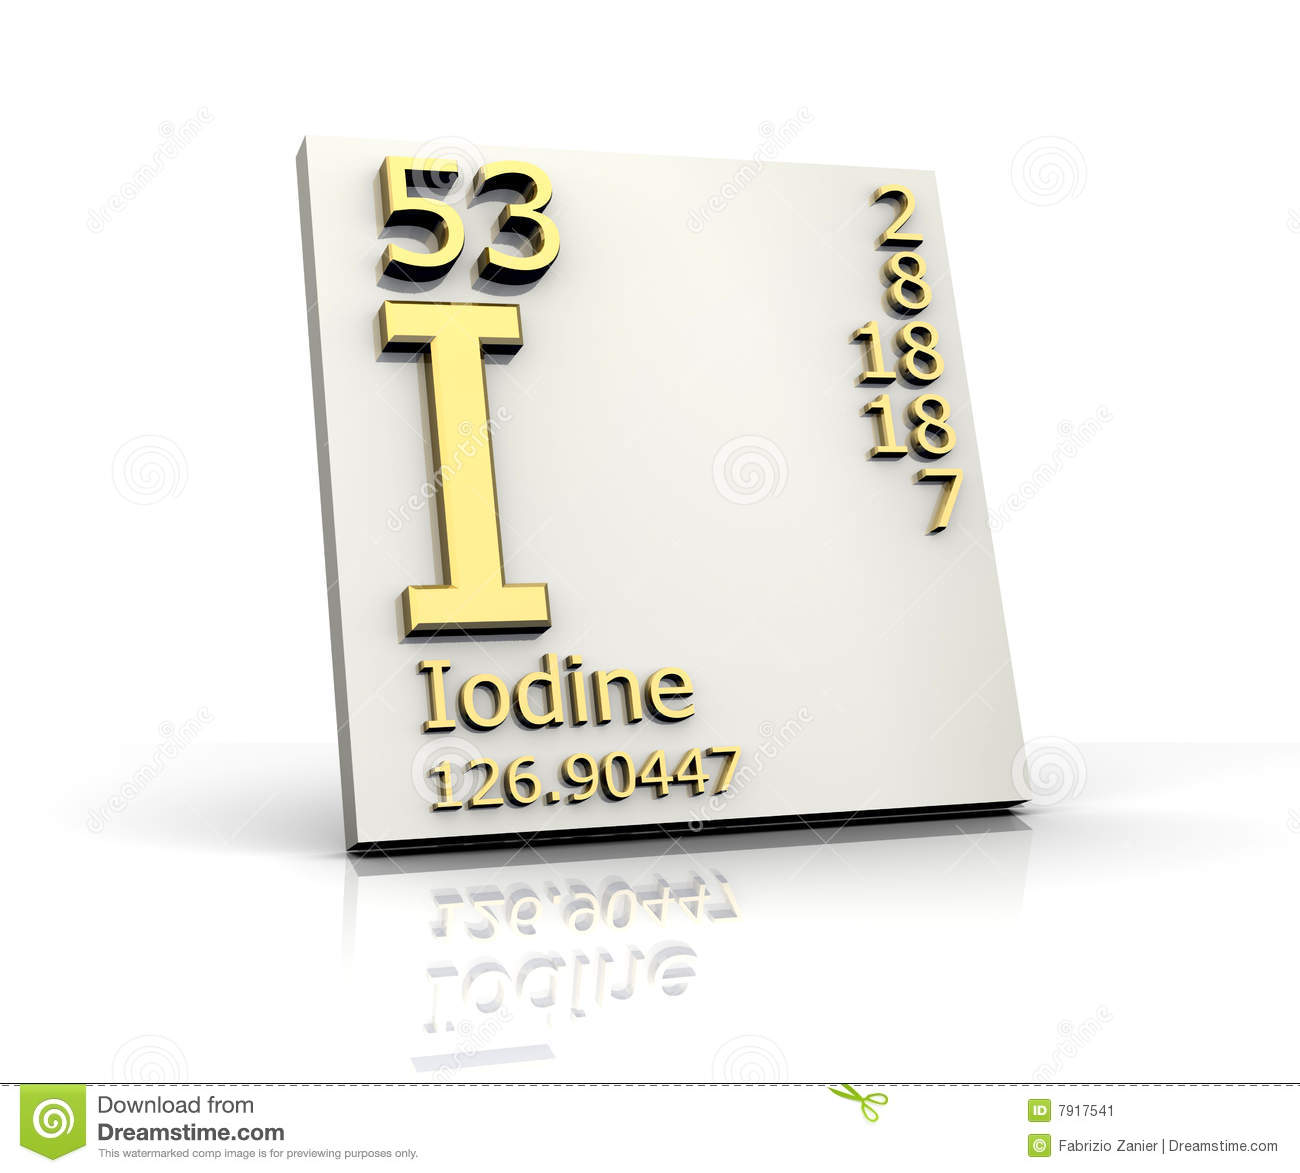 Iodine form periodic table of elements stock image image 7917541 royalty free stock photo download iodine form periodic table gamestrikefo Choice Image